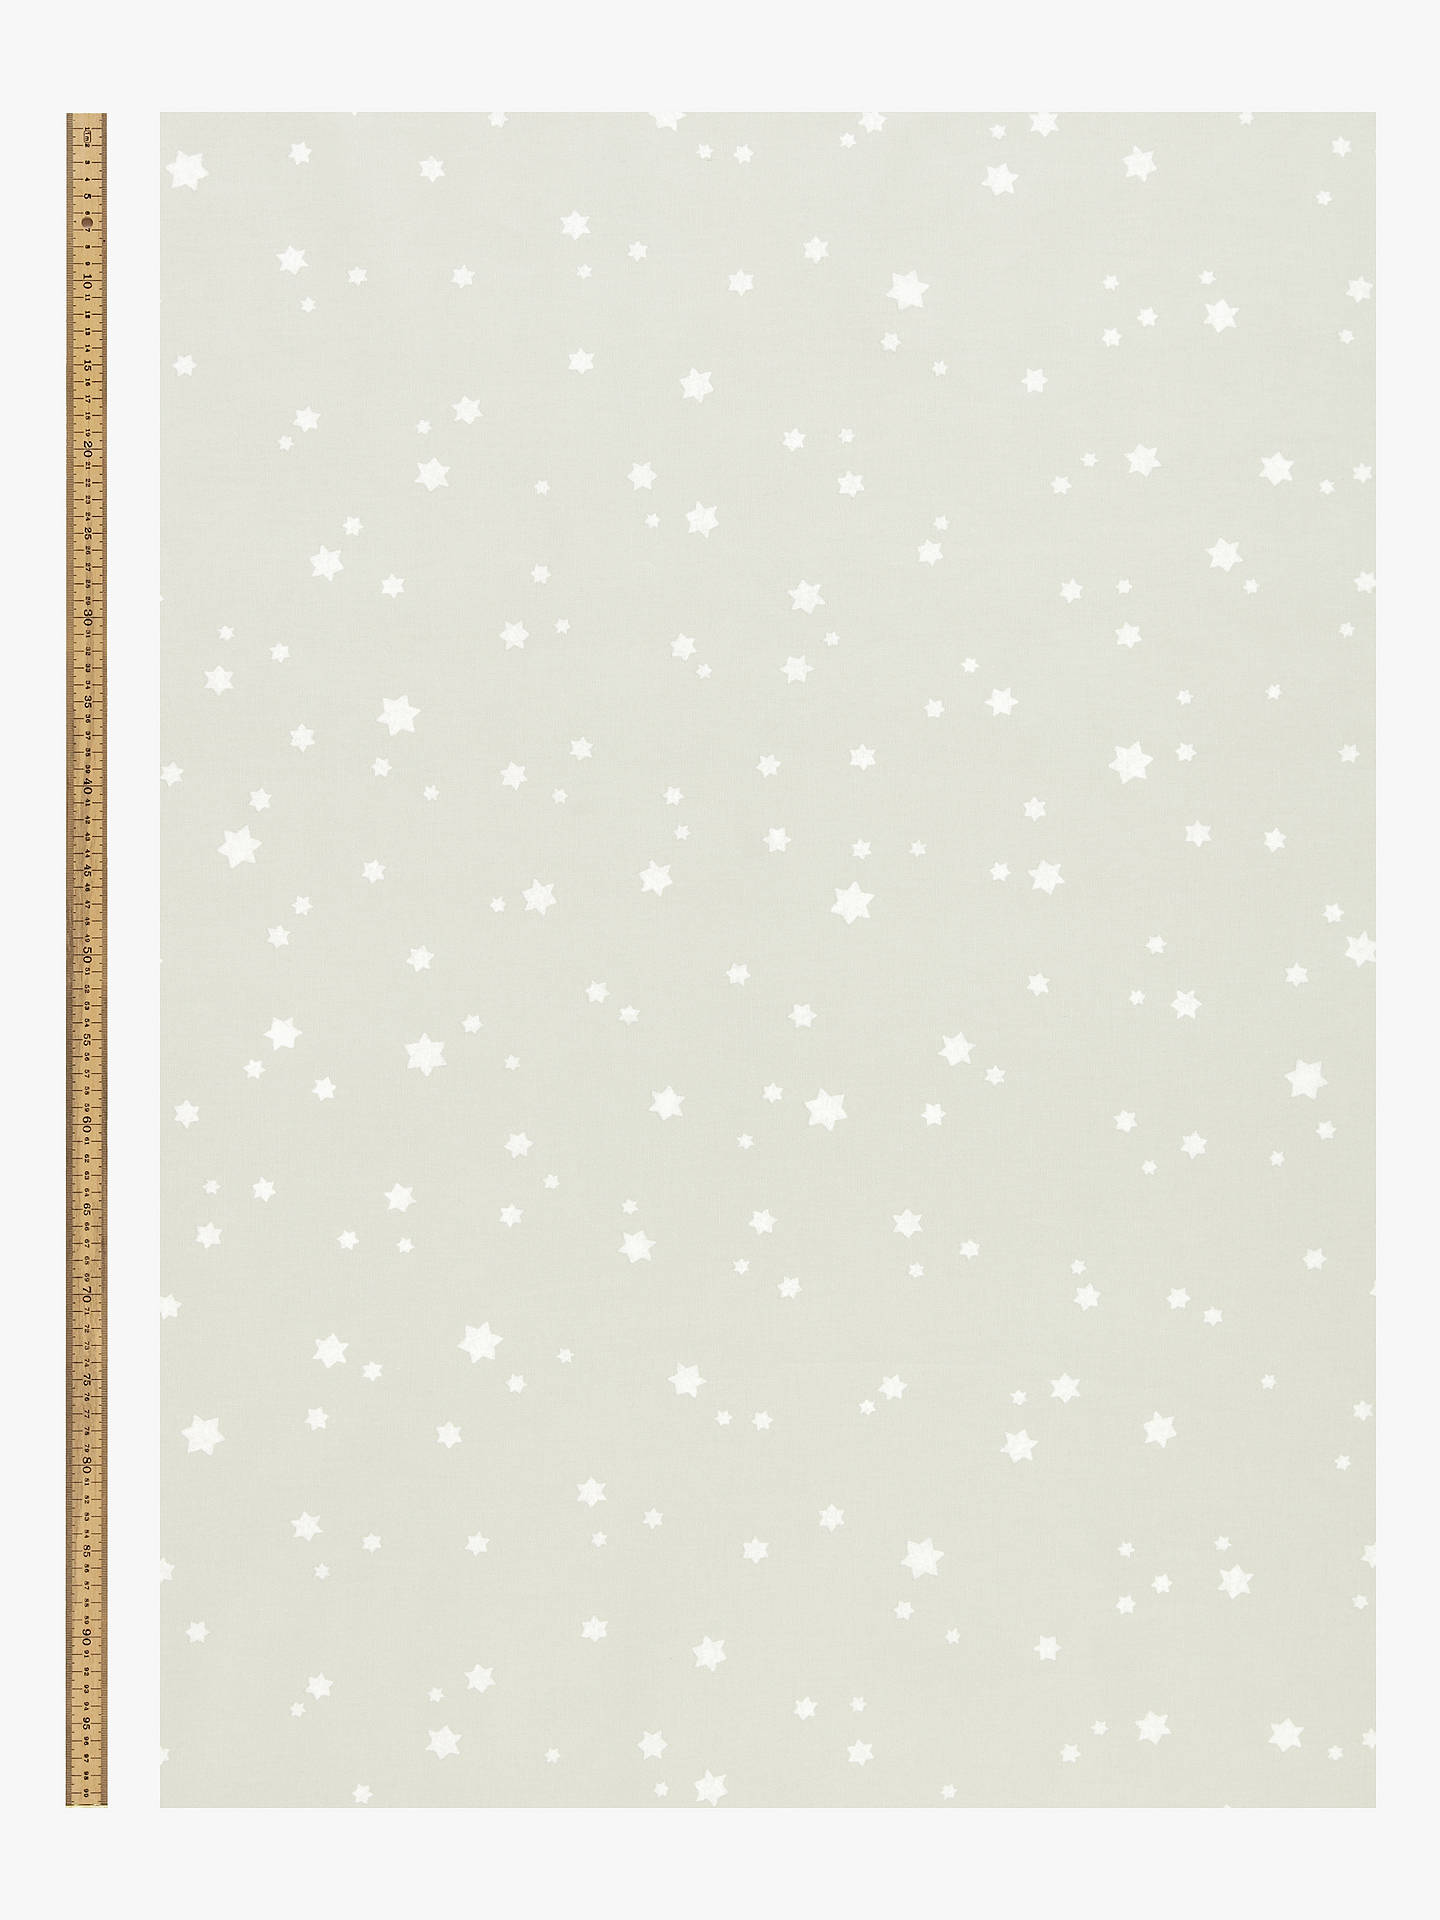 BuyJohn Lewis & Partners Twinkle Twinkle PVC Tablecloth Fabric, Grey Online at johnlewis.com